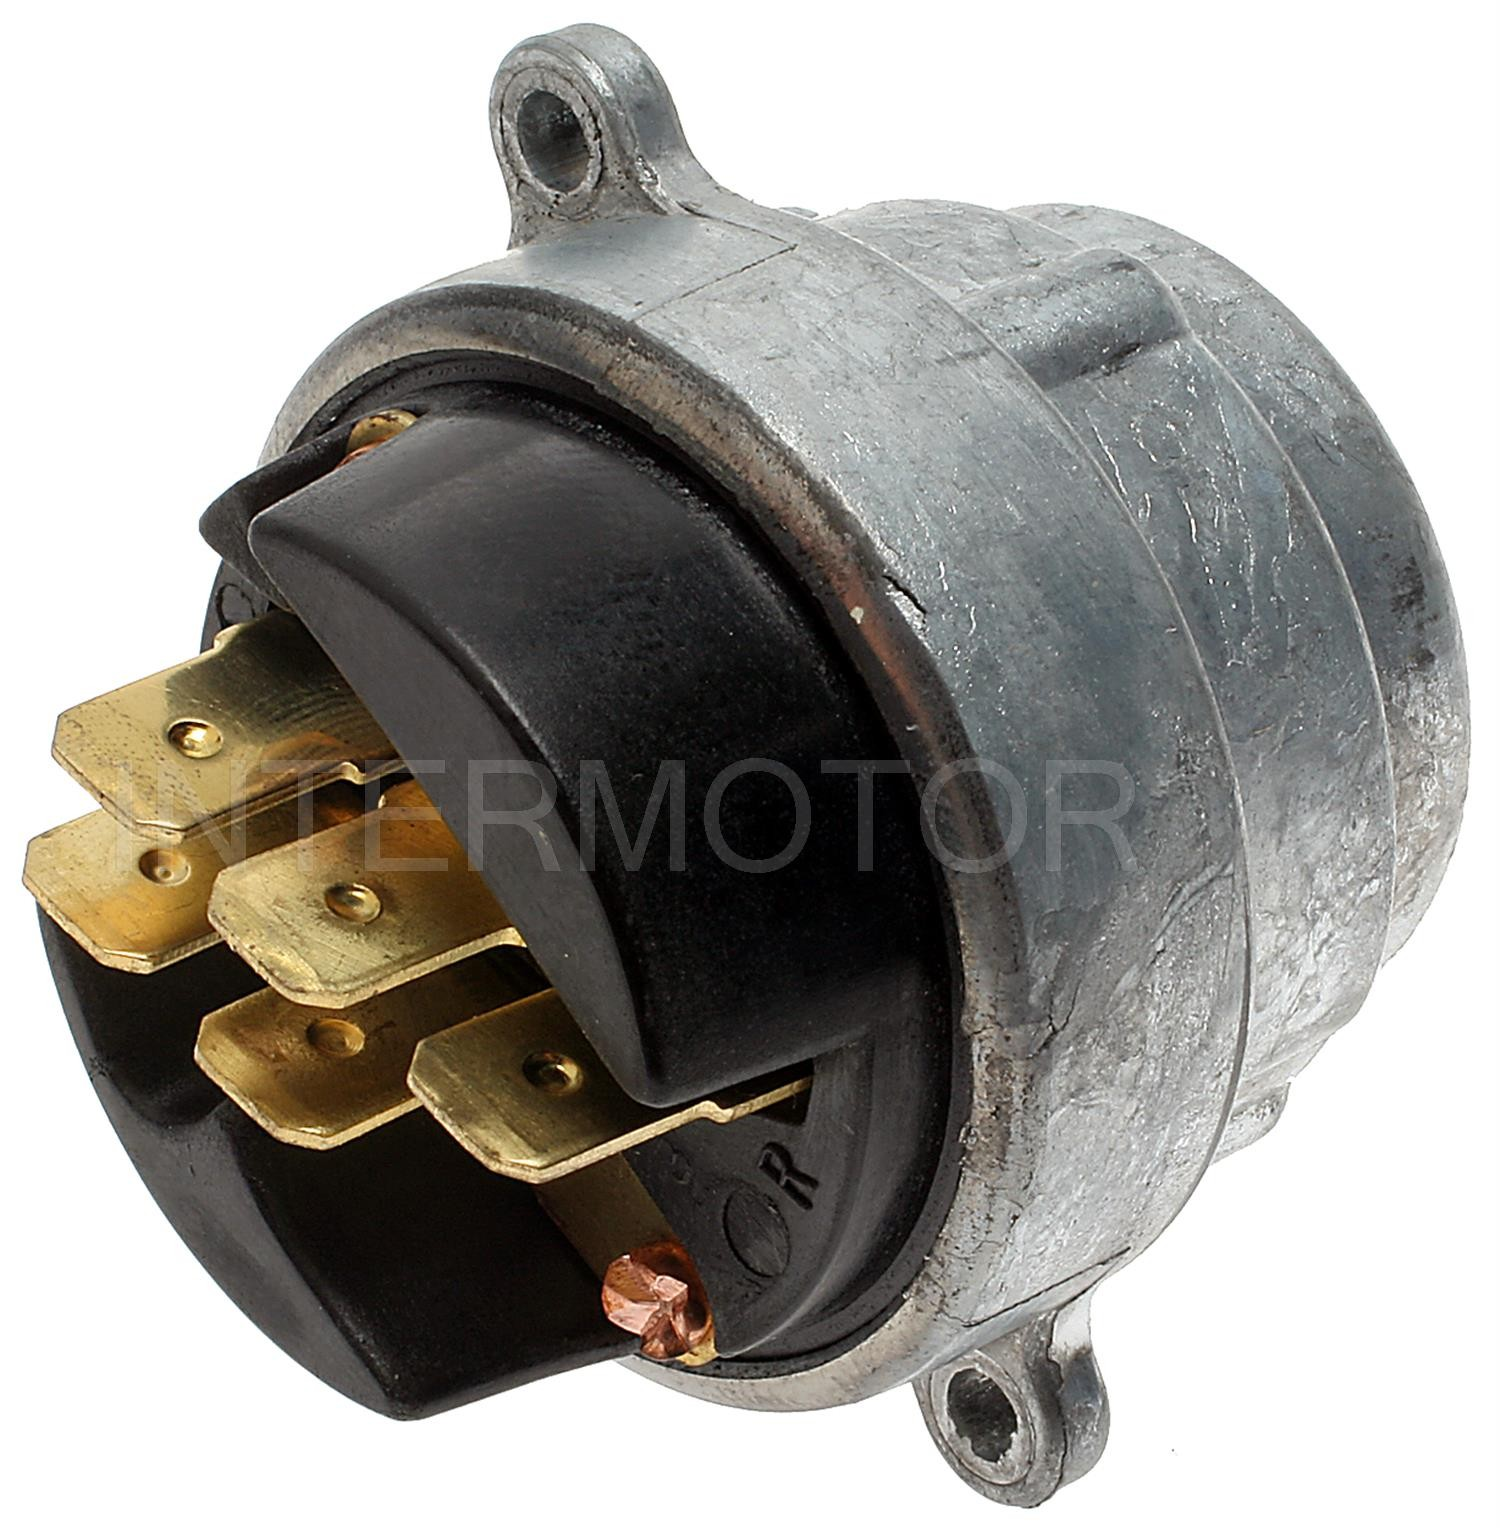 hight resolution of details about standard motor us 120 ignition switch for datsun 200sx 210 240z 260z 280z